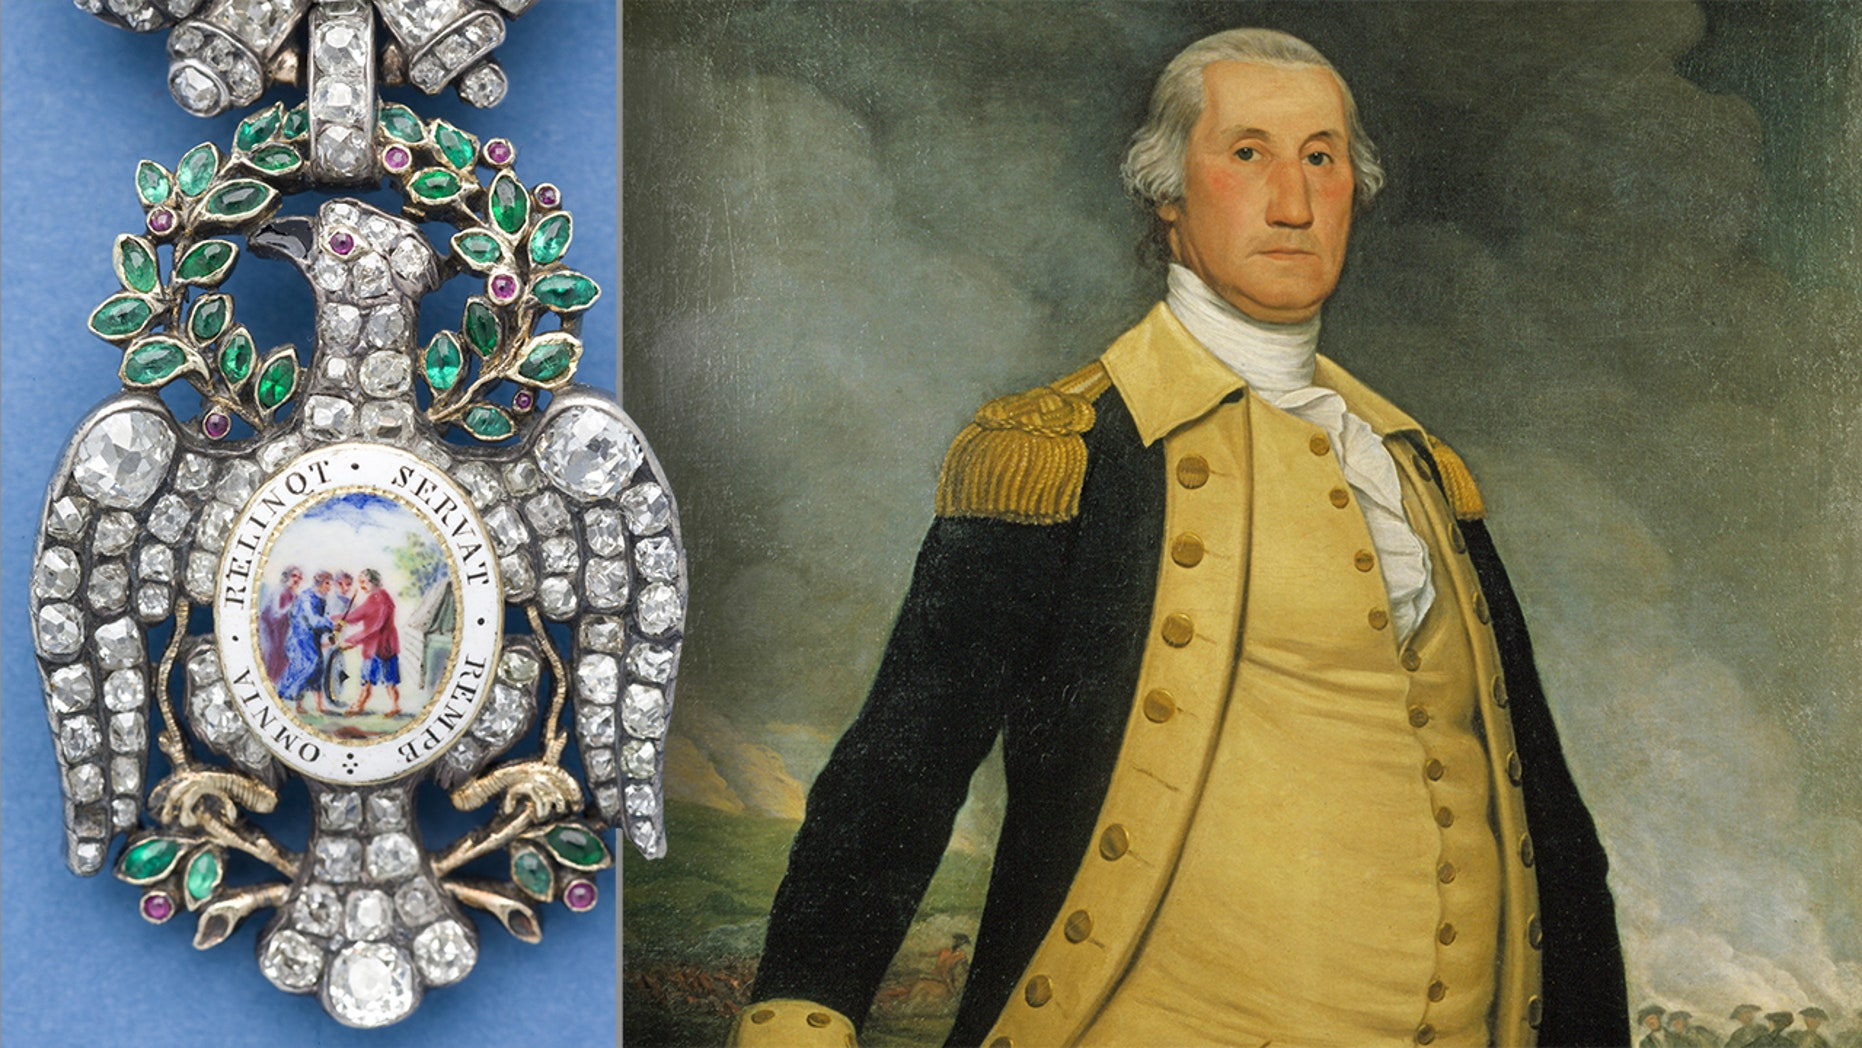 The Diamond Eagle medal (© The Society of the Cincinnati) and portrait of George Washington by Joseph Wright, 1784. (Courtesy of the Philadelphia History Museum at the Atwater Kent, the Historical Society of Pennsylvania Collection)